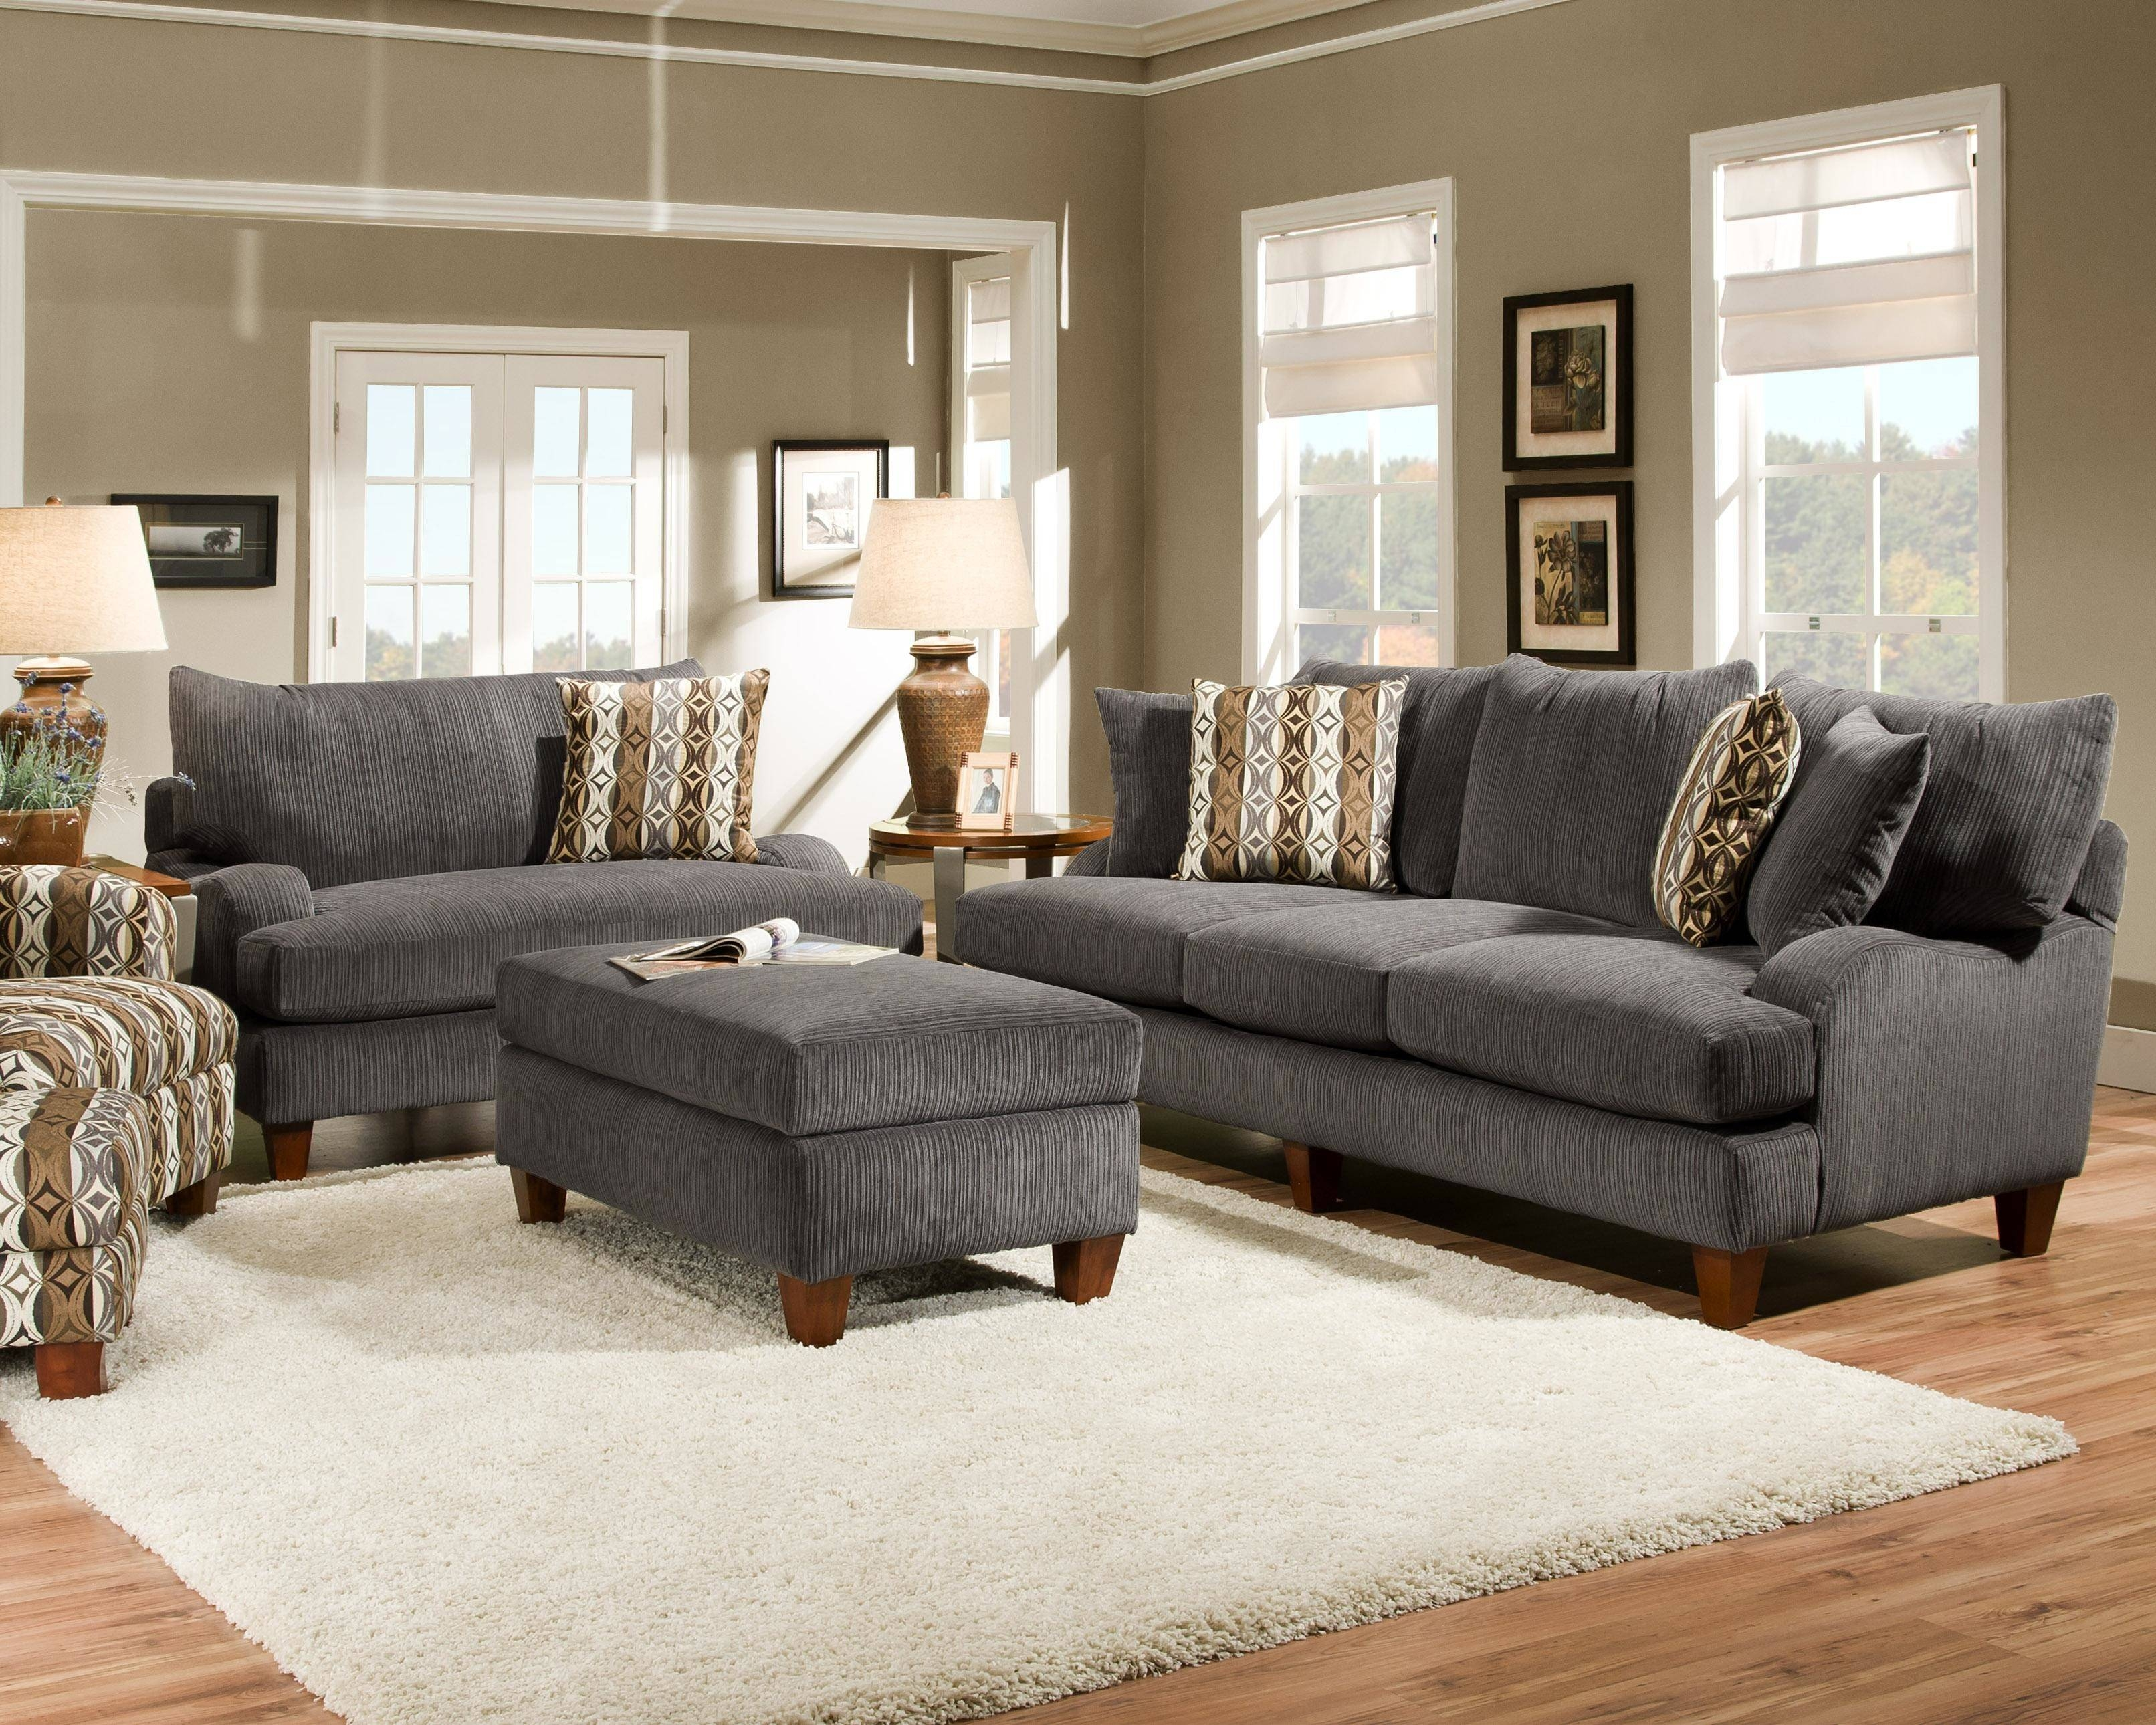 Gray Sofa Living Room Design Grey Couches In Living Rooms Dark pertaining to Gray Sofas (Image 13 of 15)